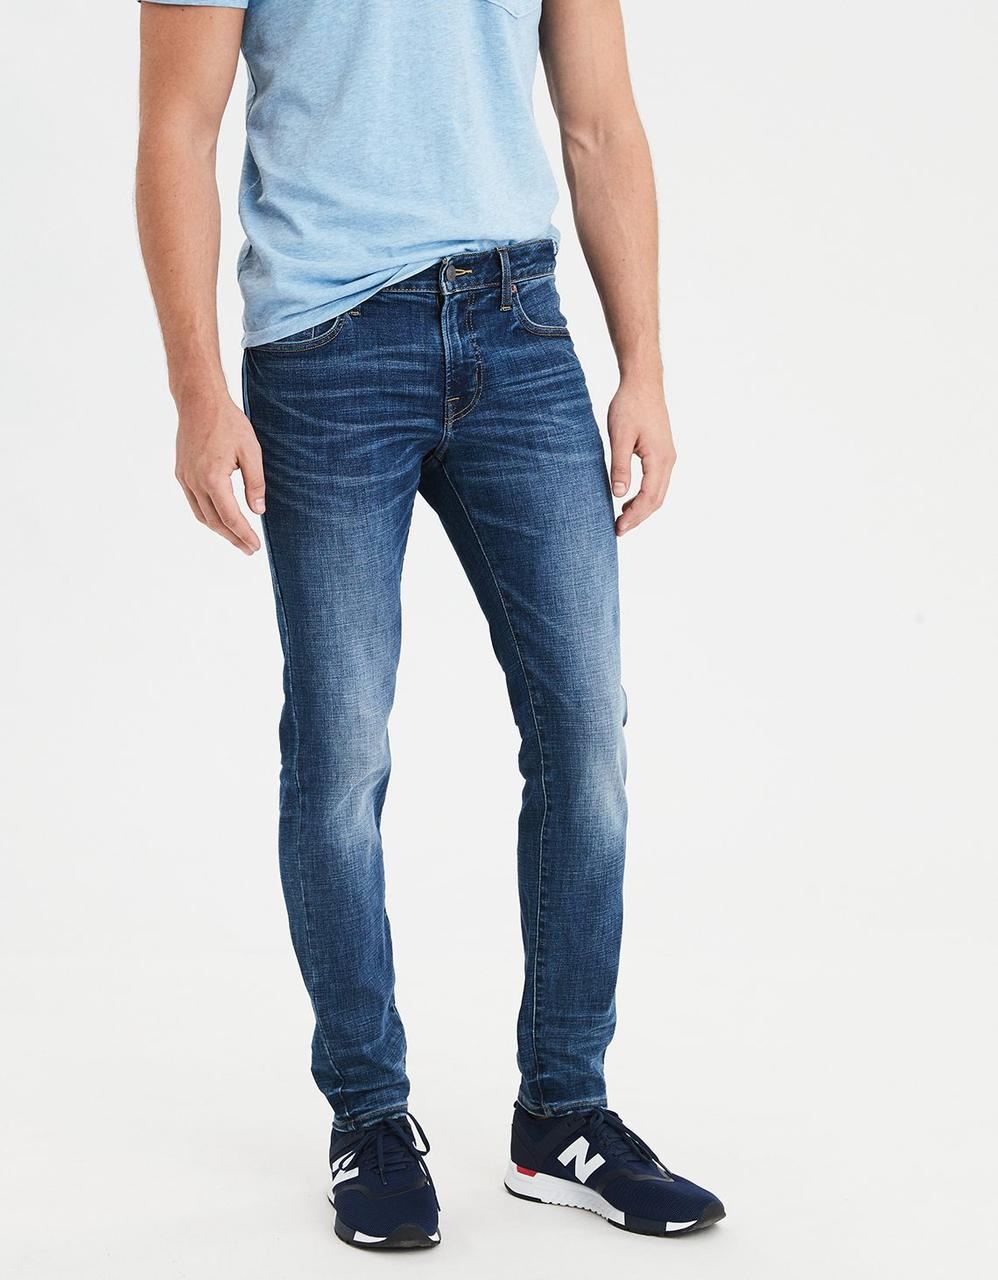 12cca577 American Eagle Jeans, AE NE(X)T LEVEL SKINNY JEAN for Men at Aeo.in